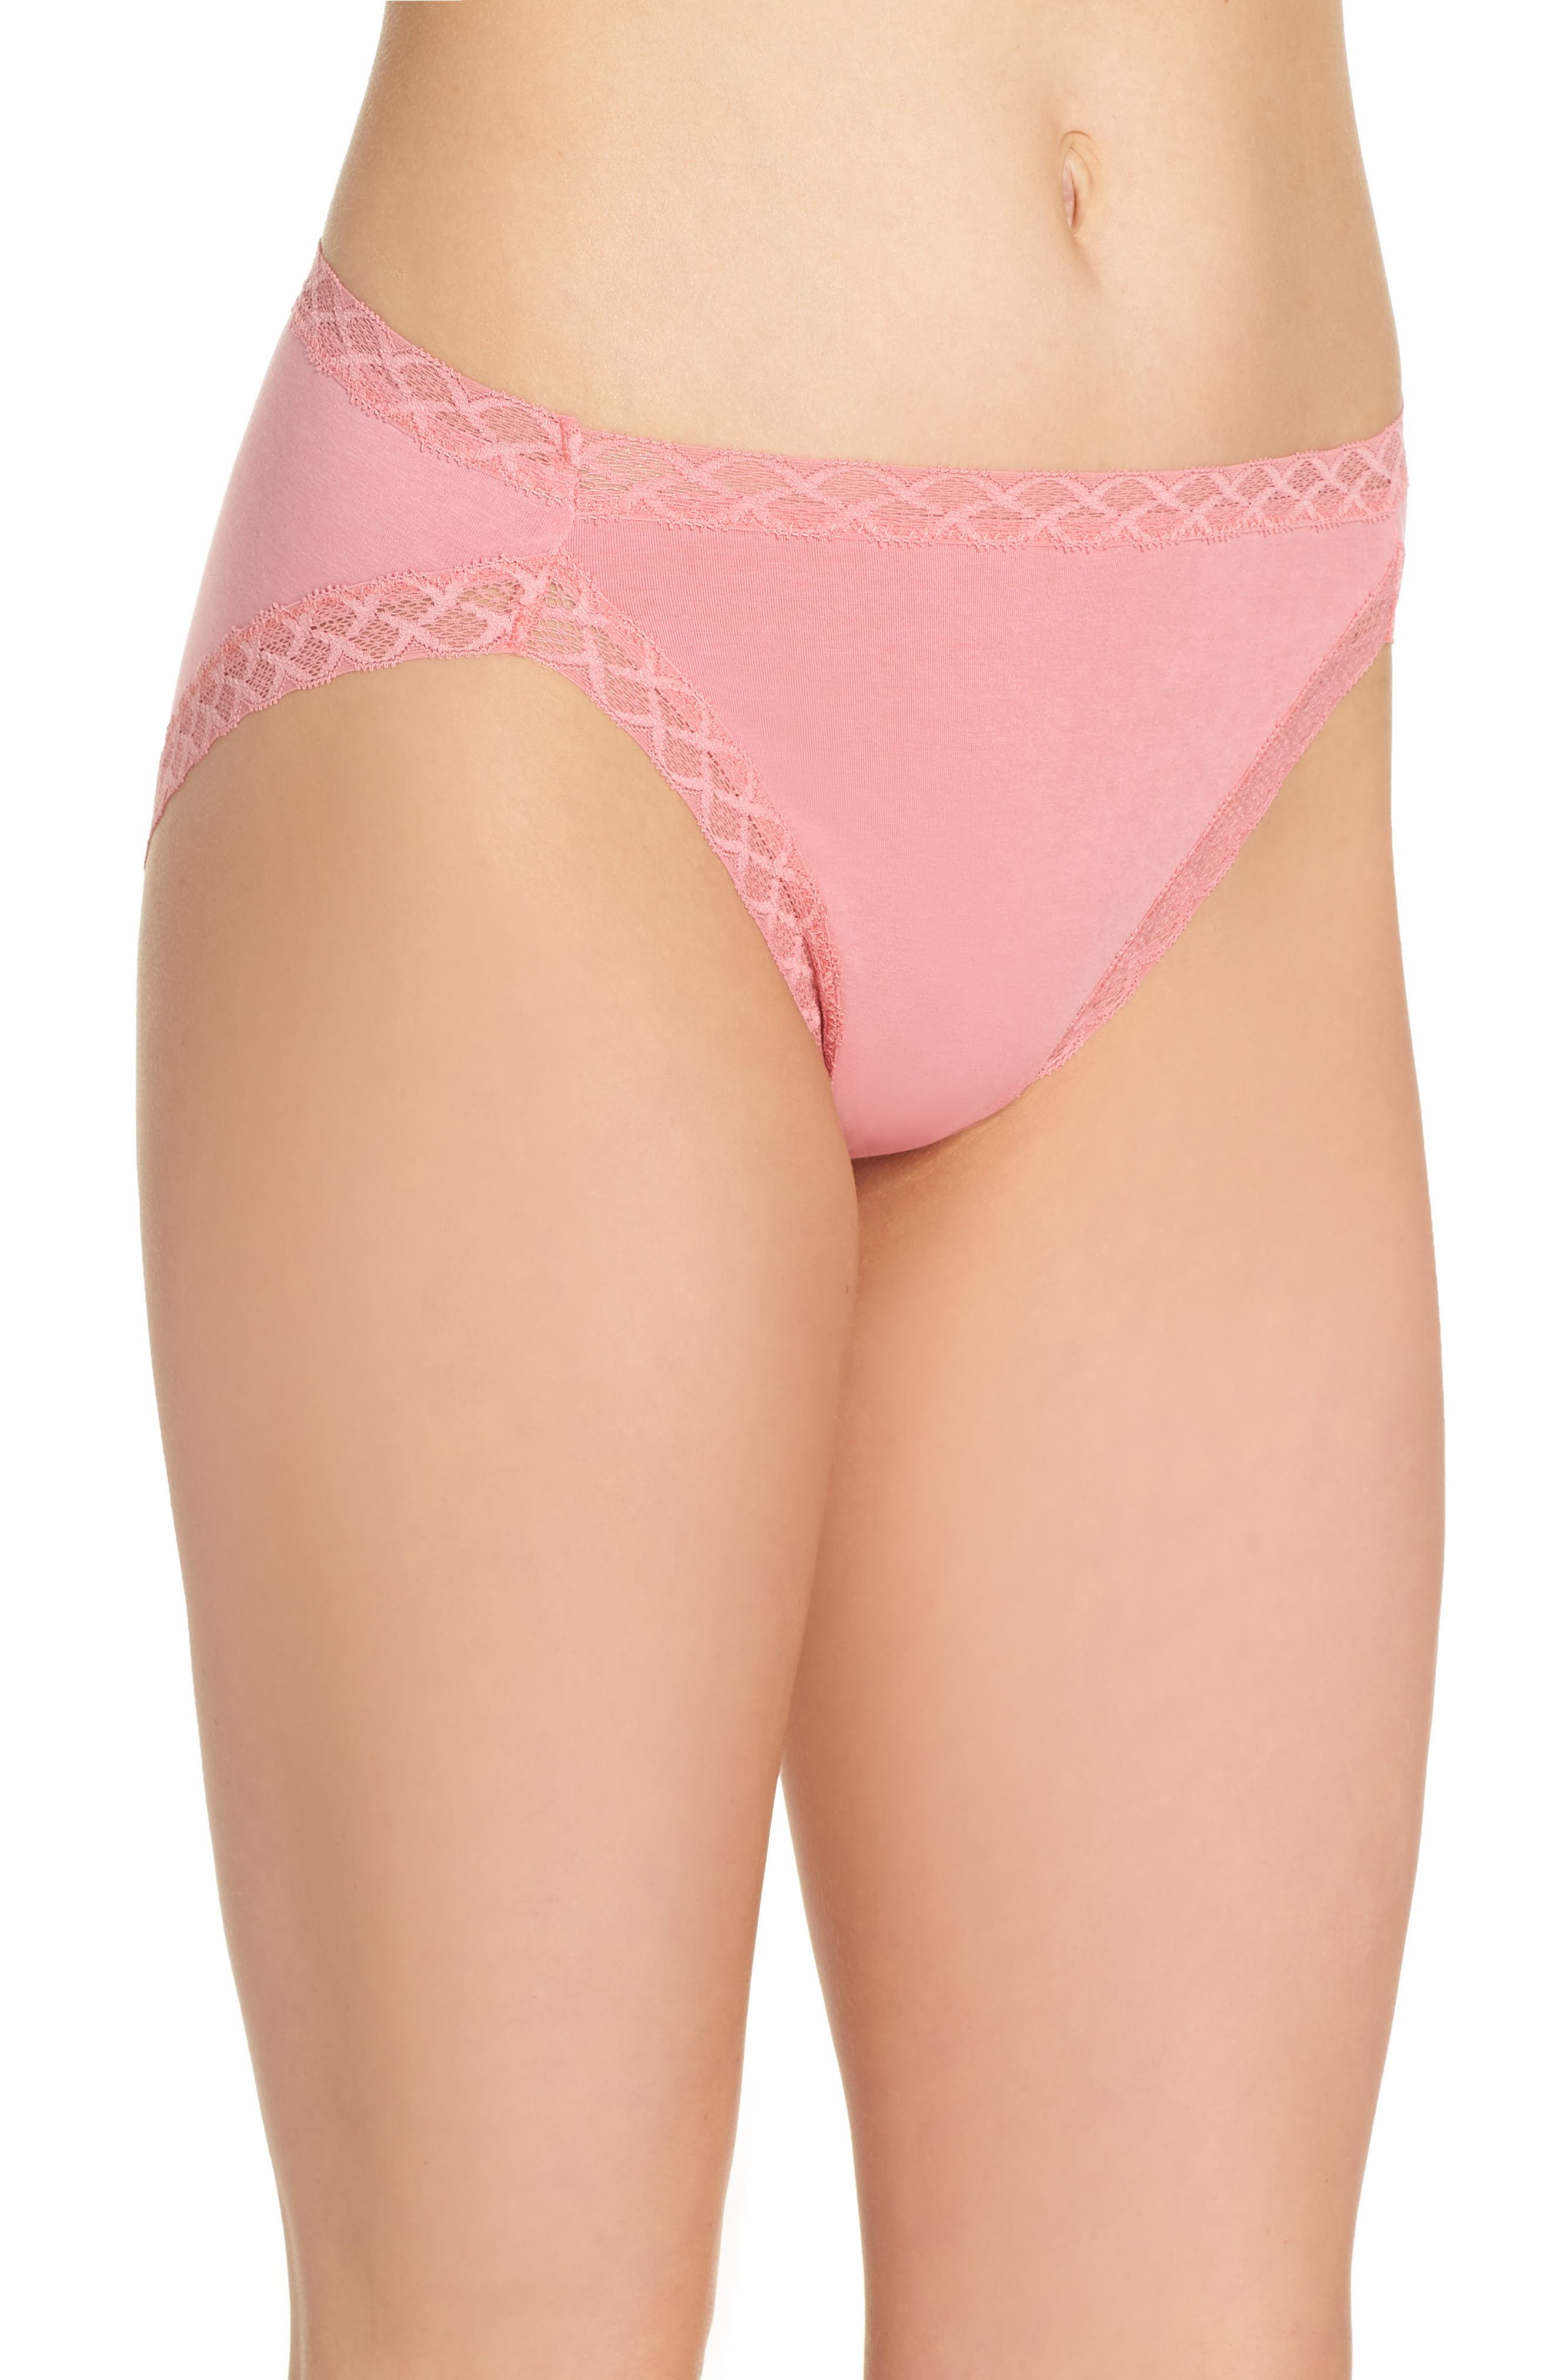 Alternate Image 3  - Natori Bliss French Cut Briefs (3 for $45)